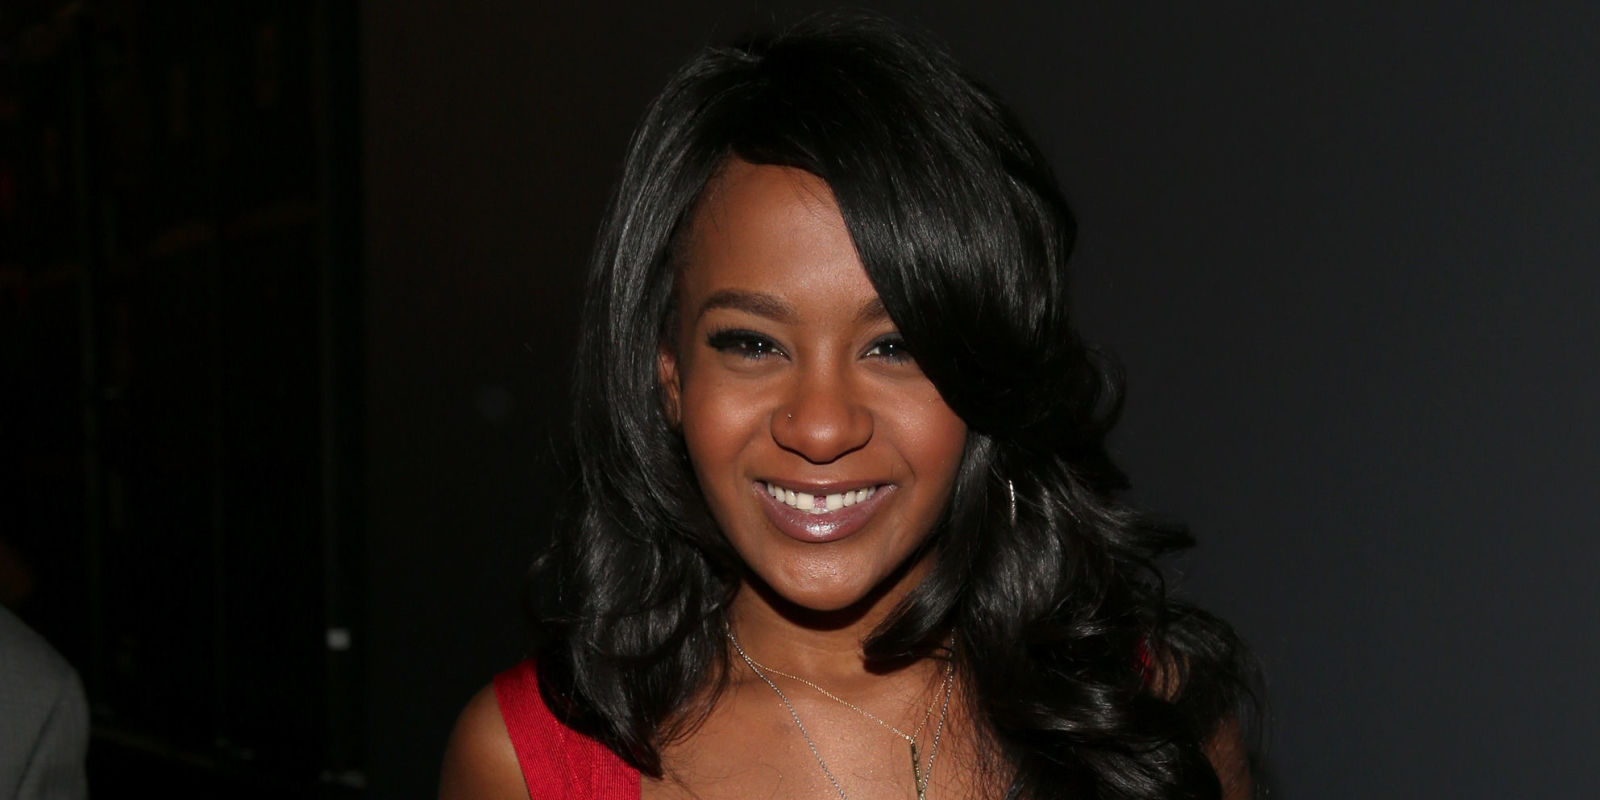 Gallery Books to publish an investigative book about Whitney Photos of whitney houston and bobbi kristina